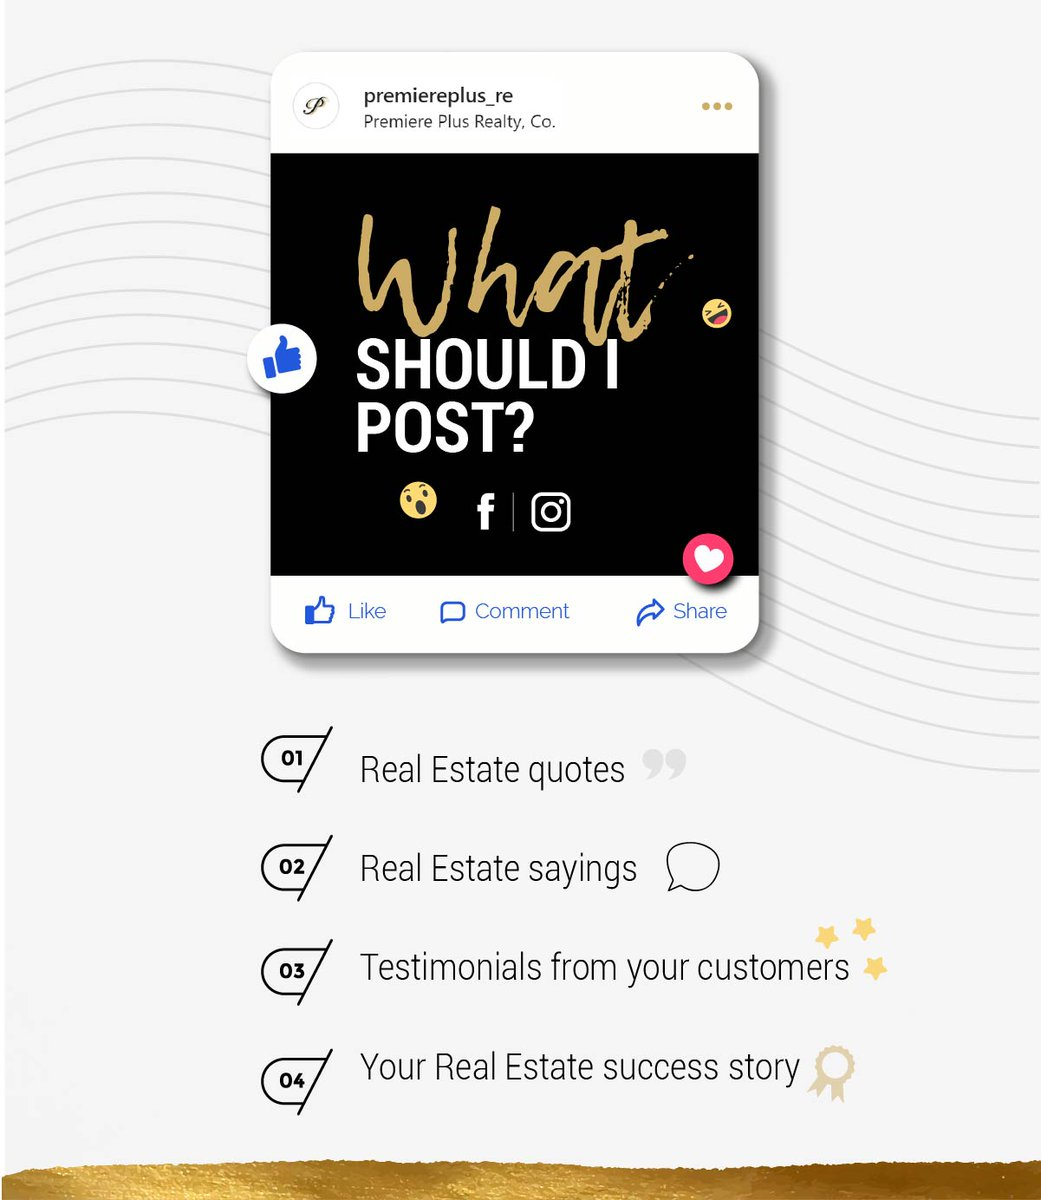 Do you want more tips?  Check out our Instagram page!  #PPR #realestatetips